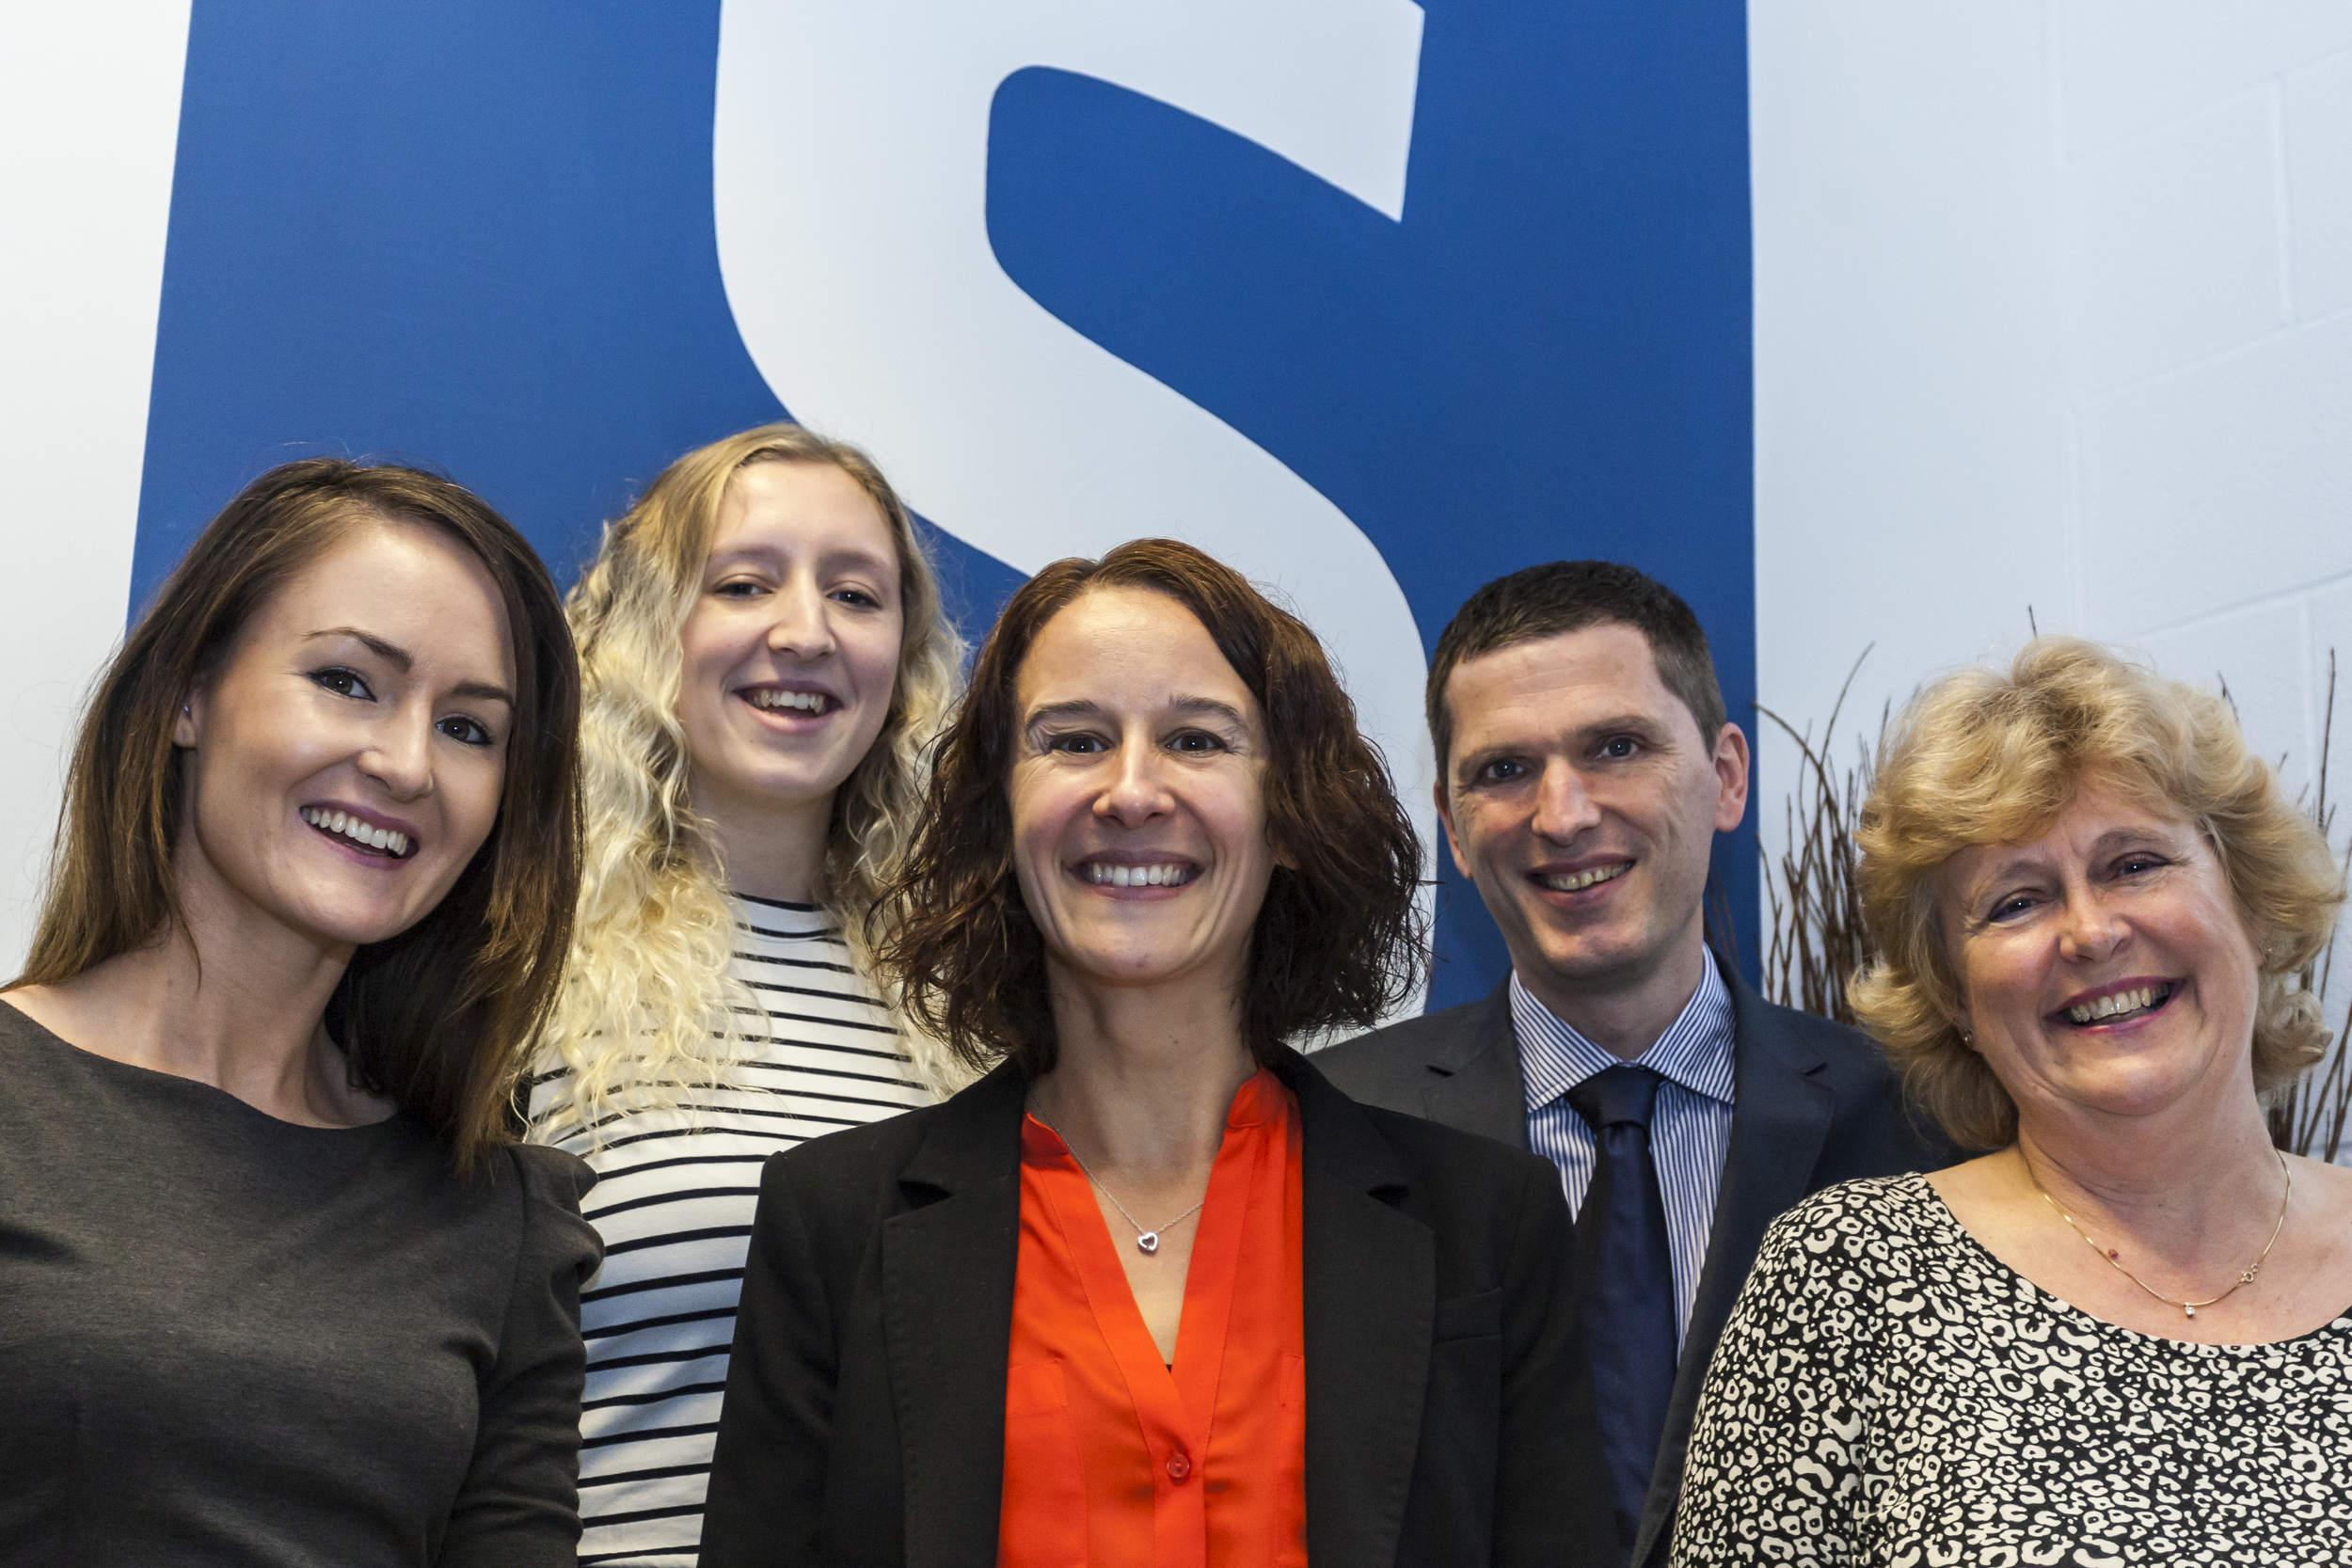 Smiles all round the team at Status Social